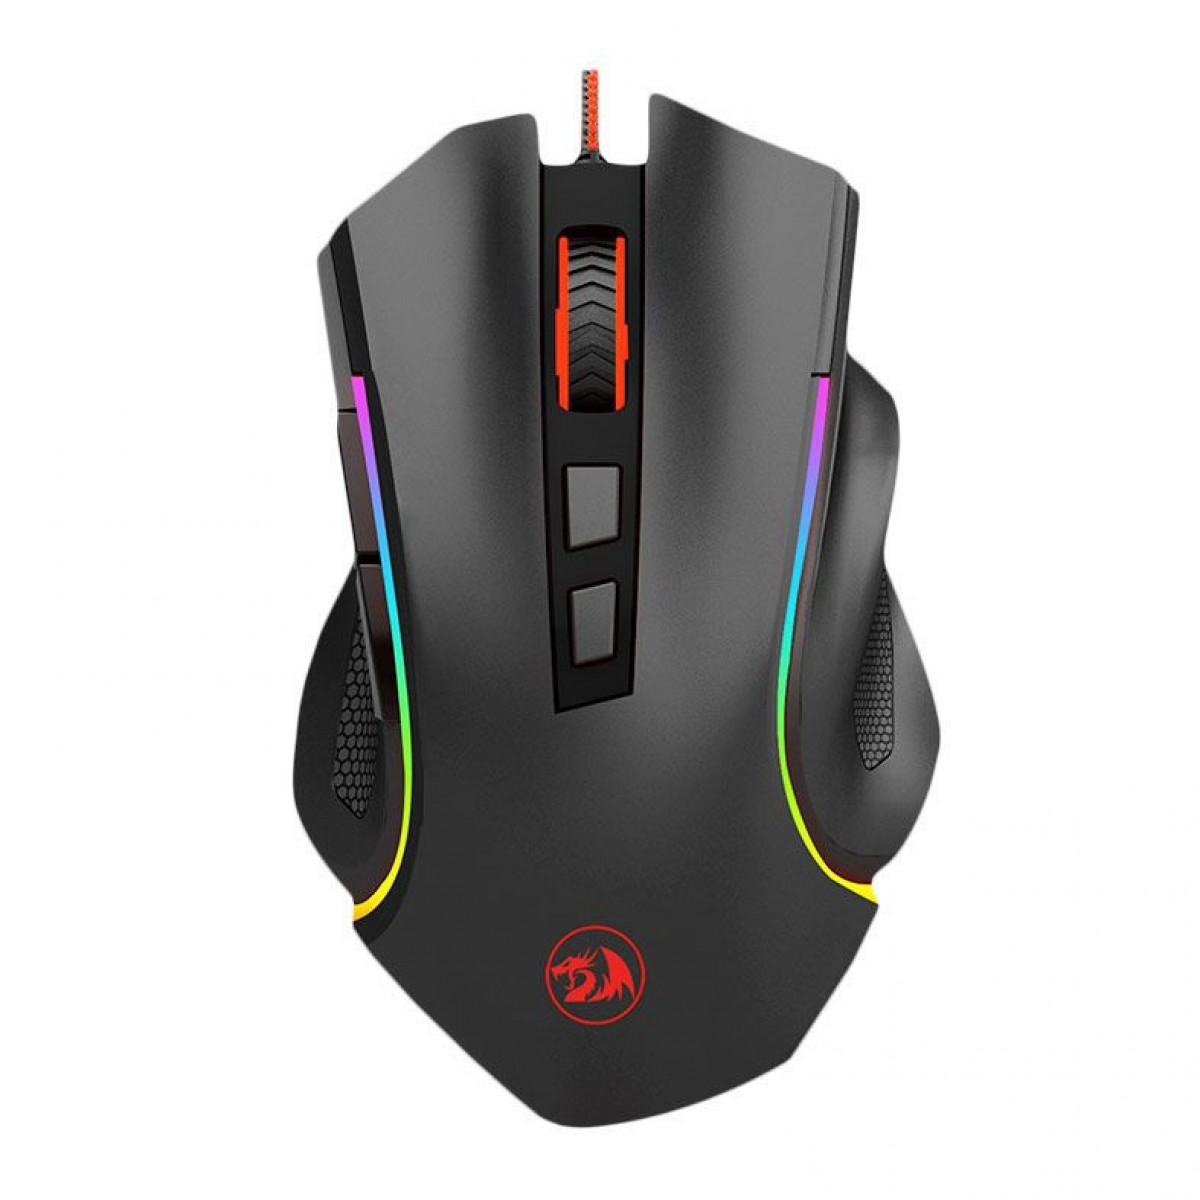 Combo Gamer Redragon Mouse e Mouse Pad 352x252x3mm, M602A-BA